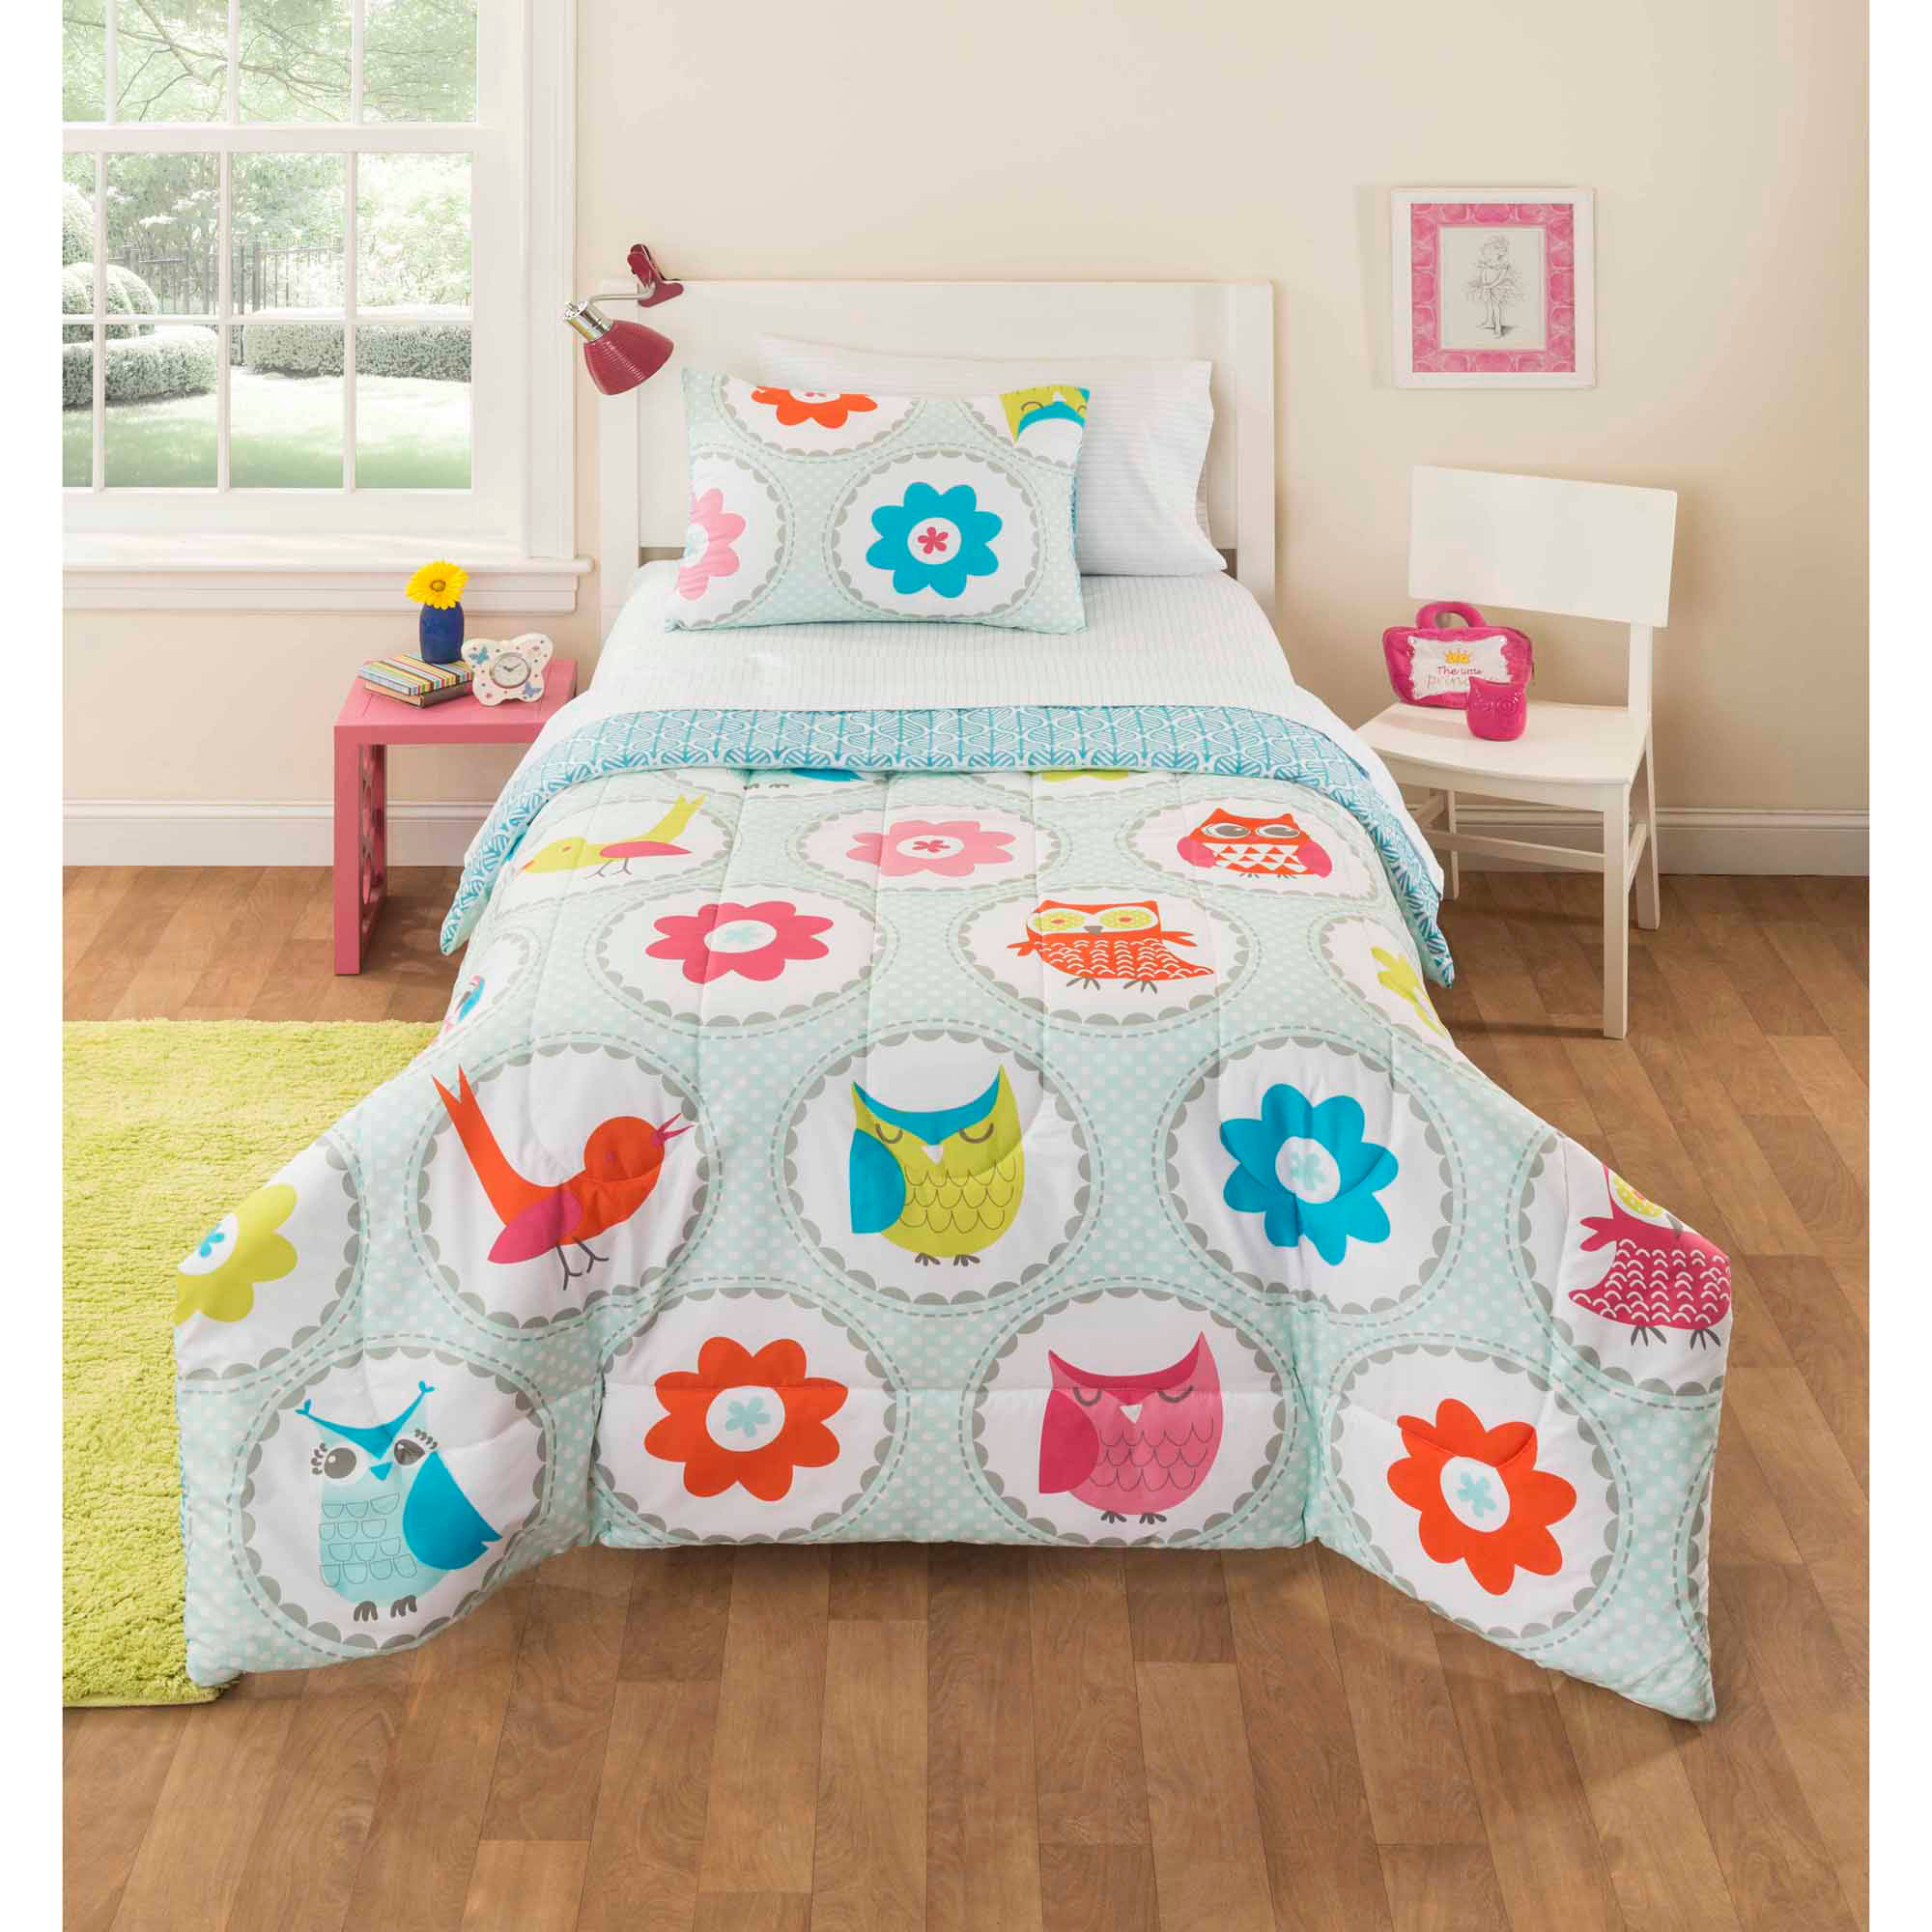 Mainstays Kids Owl Stripe Bedding Bed in a Bag